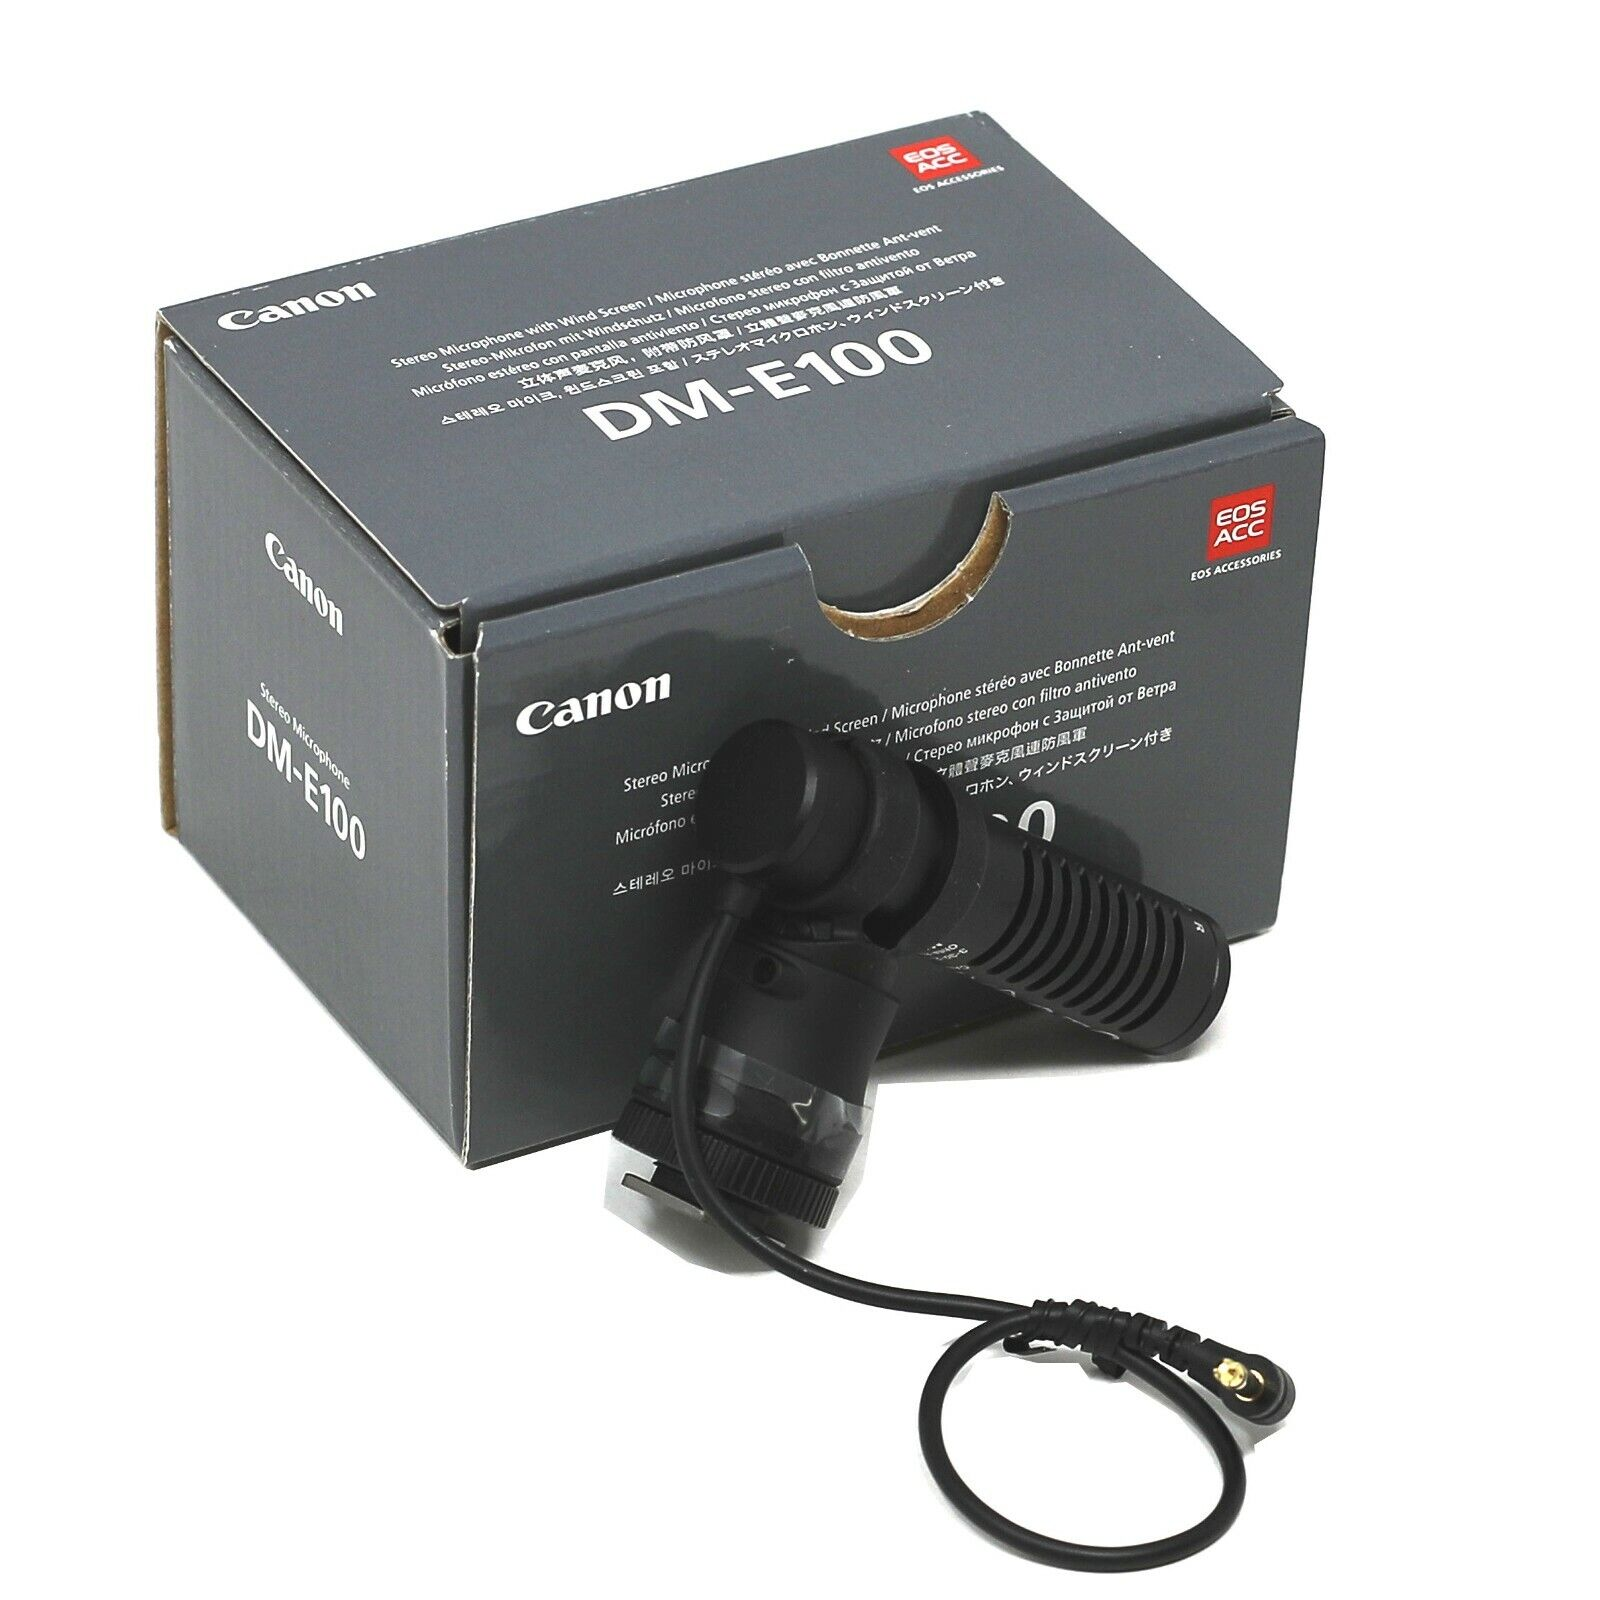 Canon Stereo Microphone DM-E100 - 2 Year Warranty - UK NEXT DAY DELIVERY